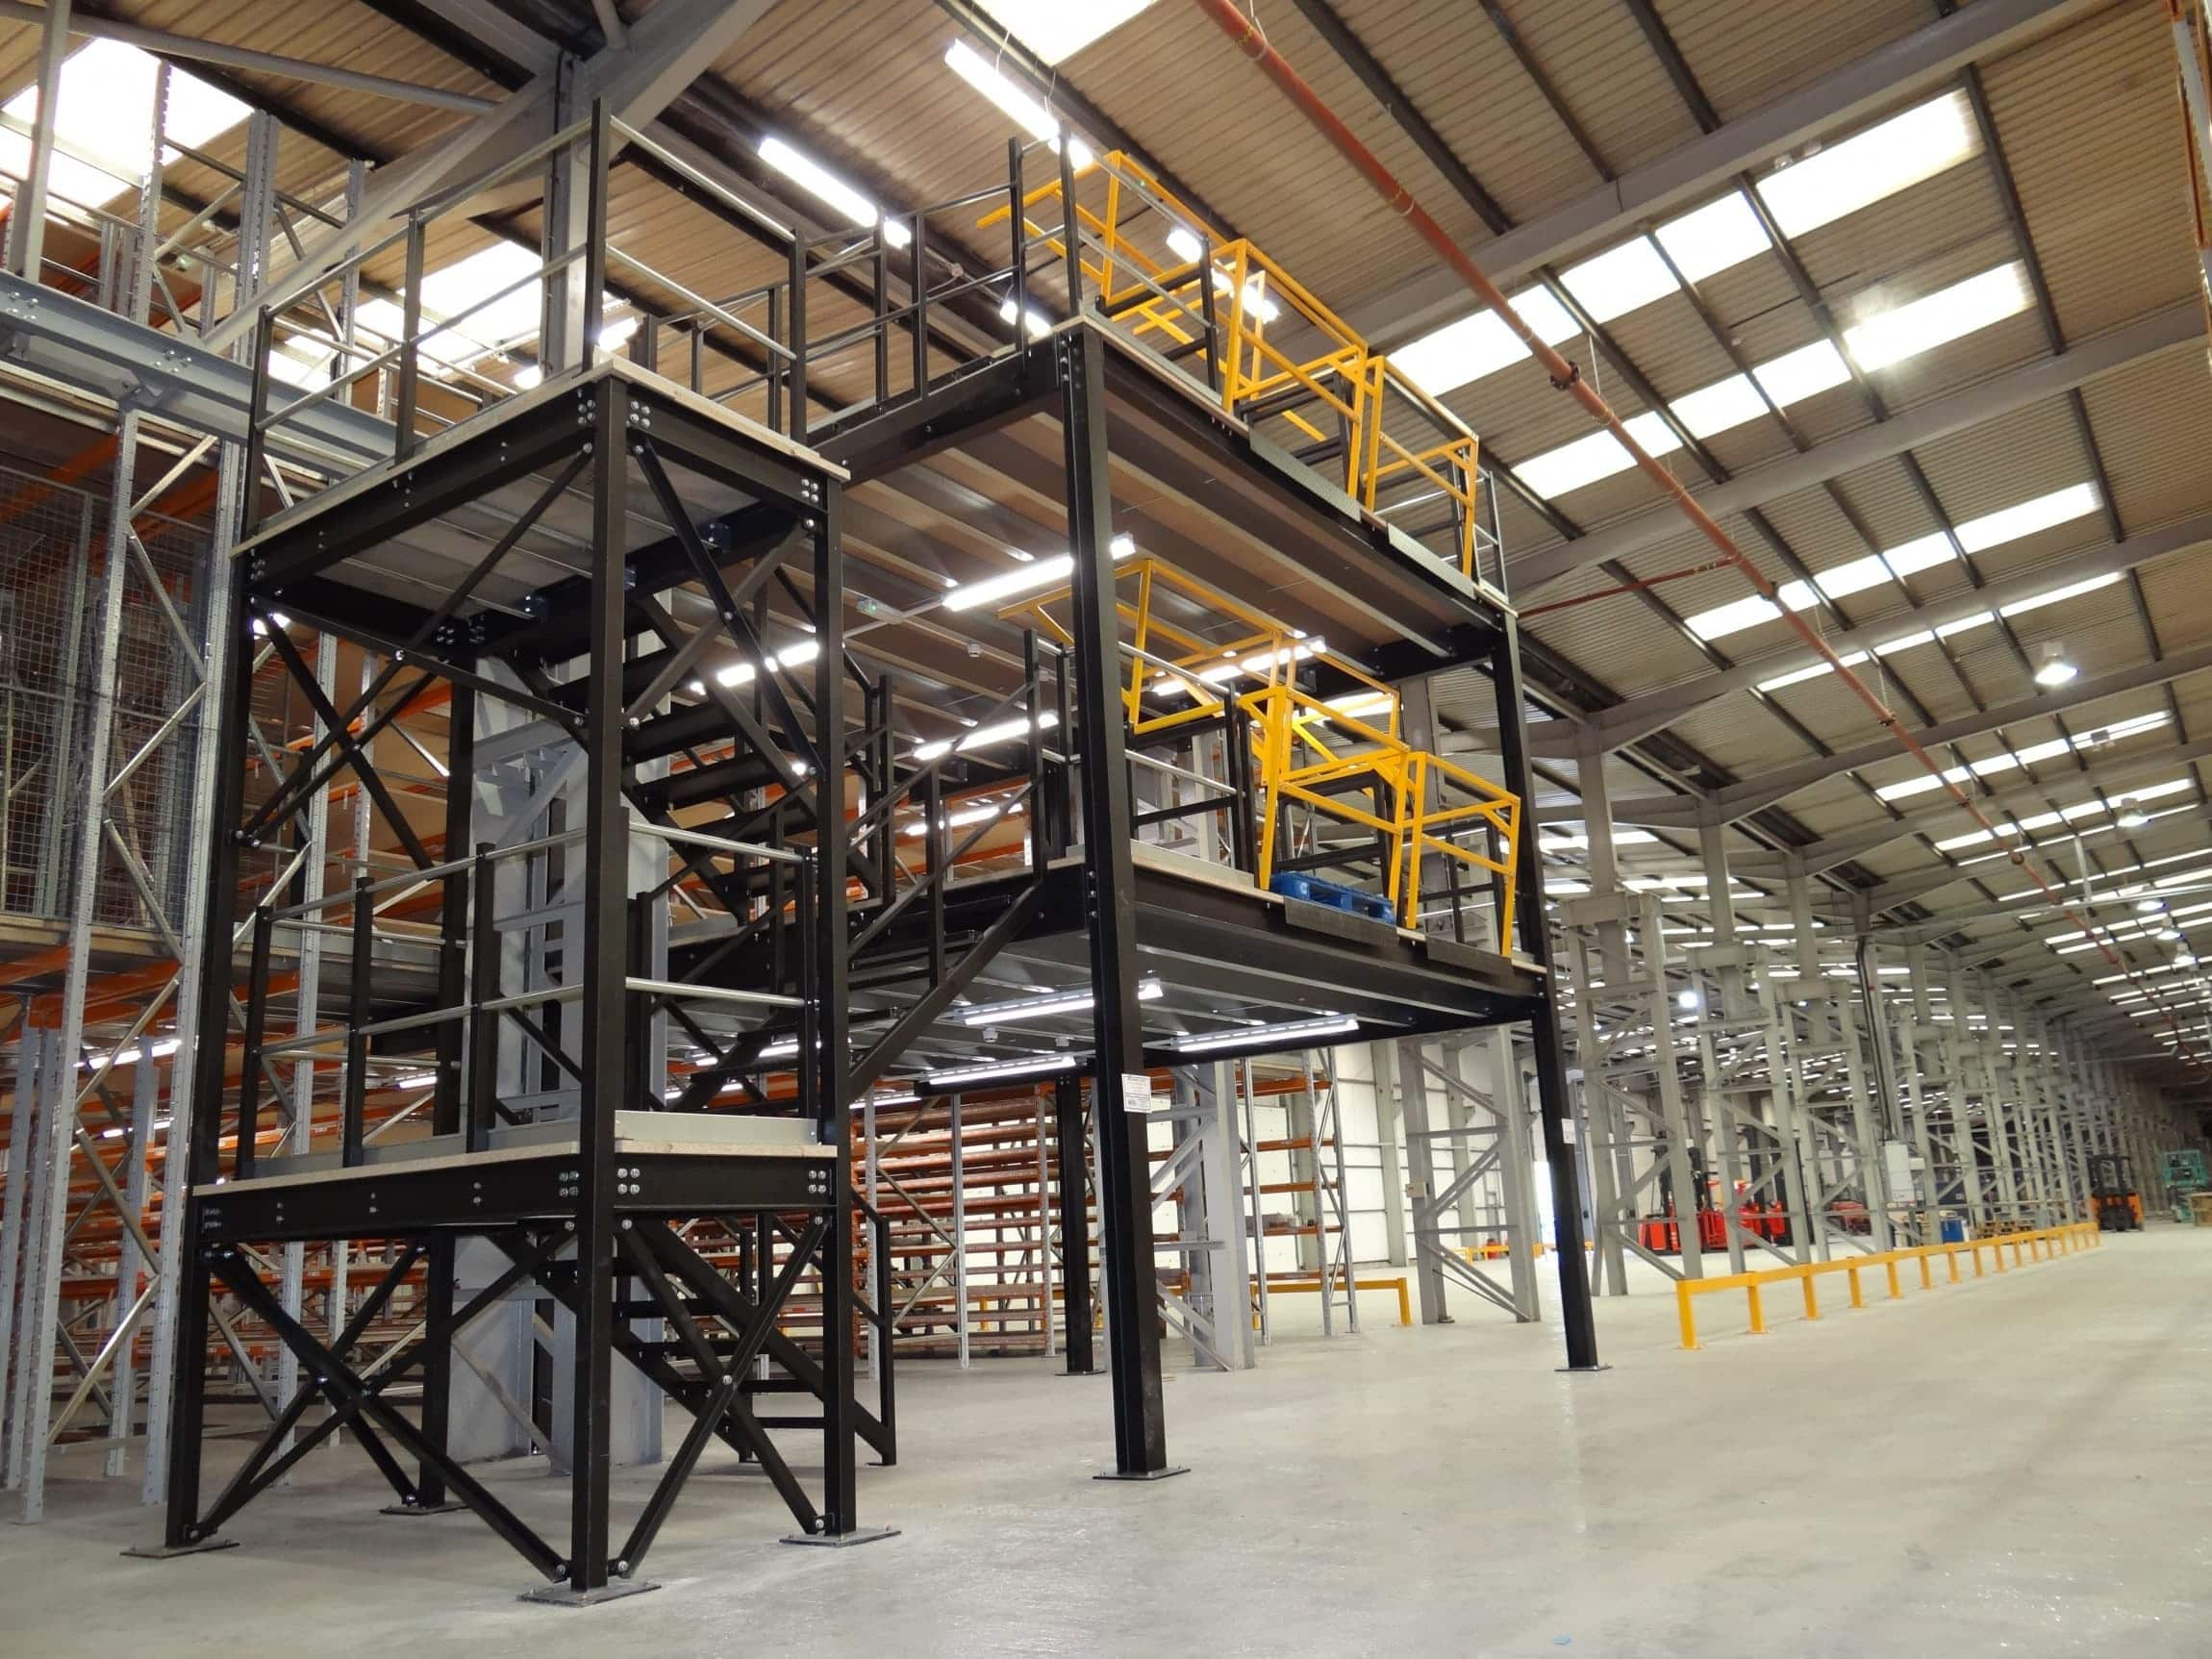 Heavy Duty Mezzanine Floor in black and yellow